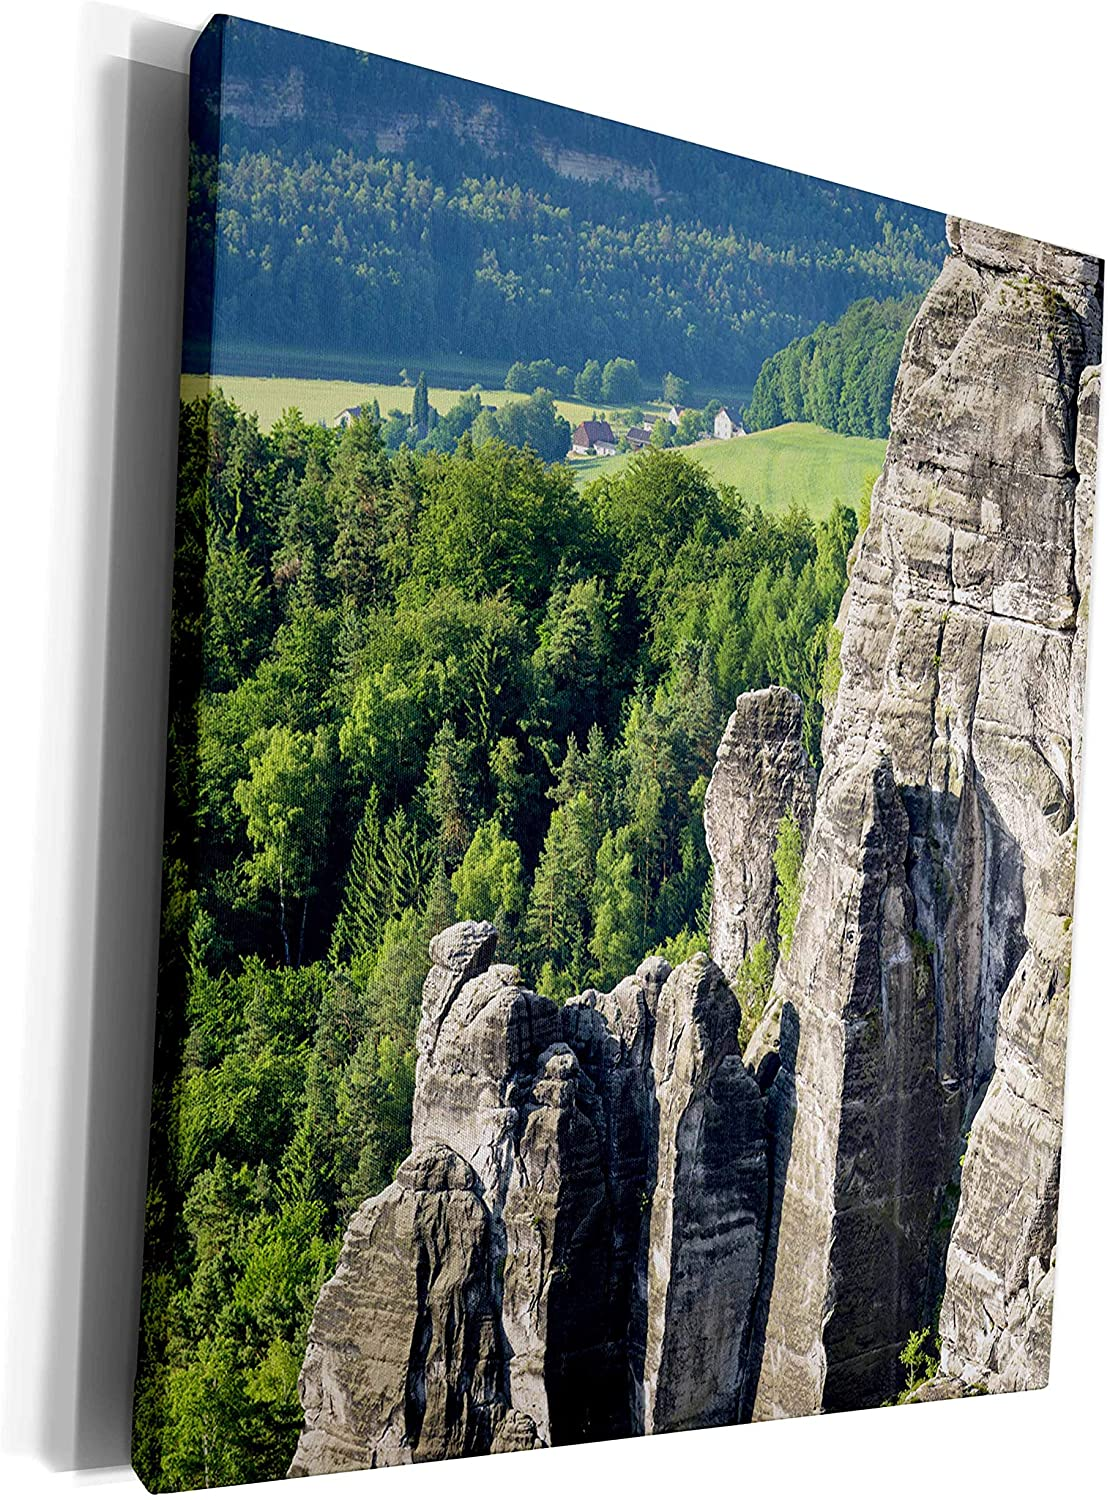 3dRose Danita Delimont - Mountains - Grosse Gans - Saxon Switzerland NP, Germany - Museum Grade Canvas Wrap (cw_206522_1)